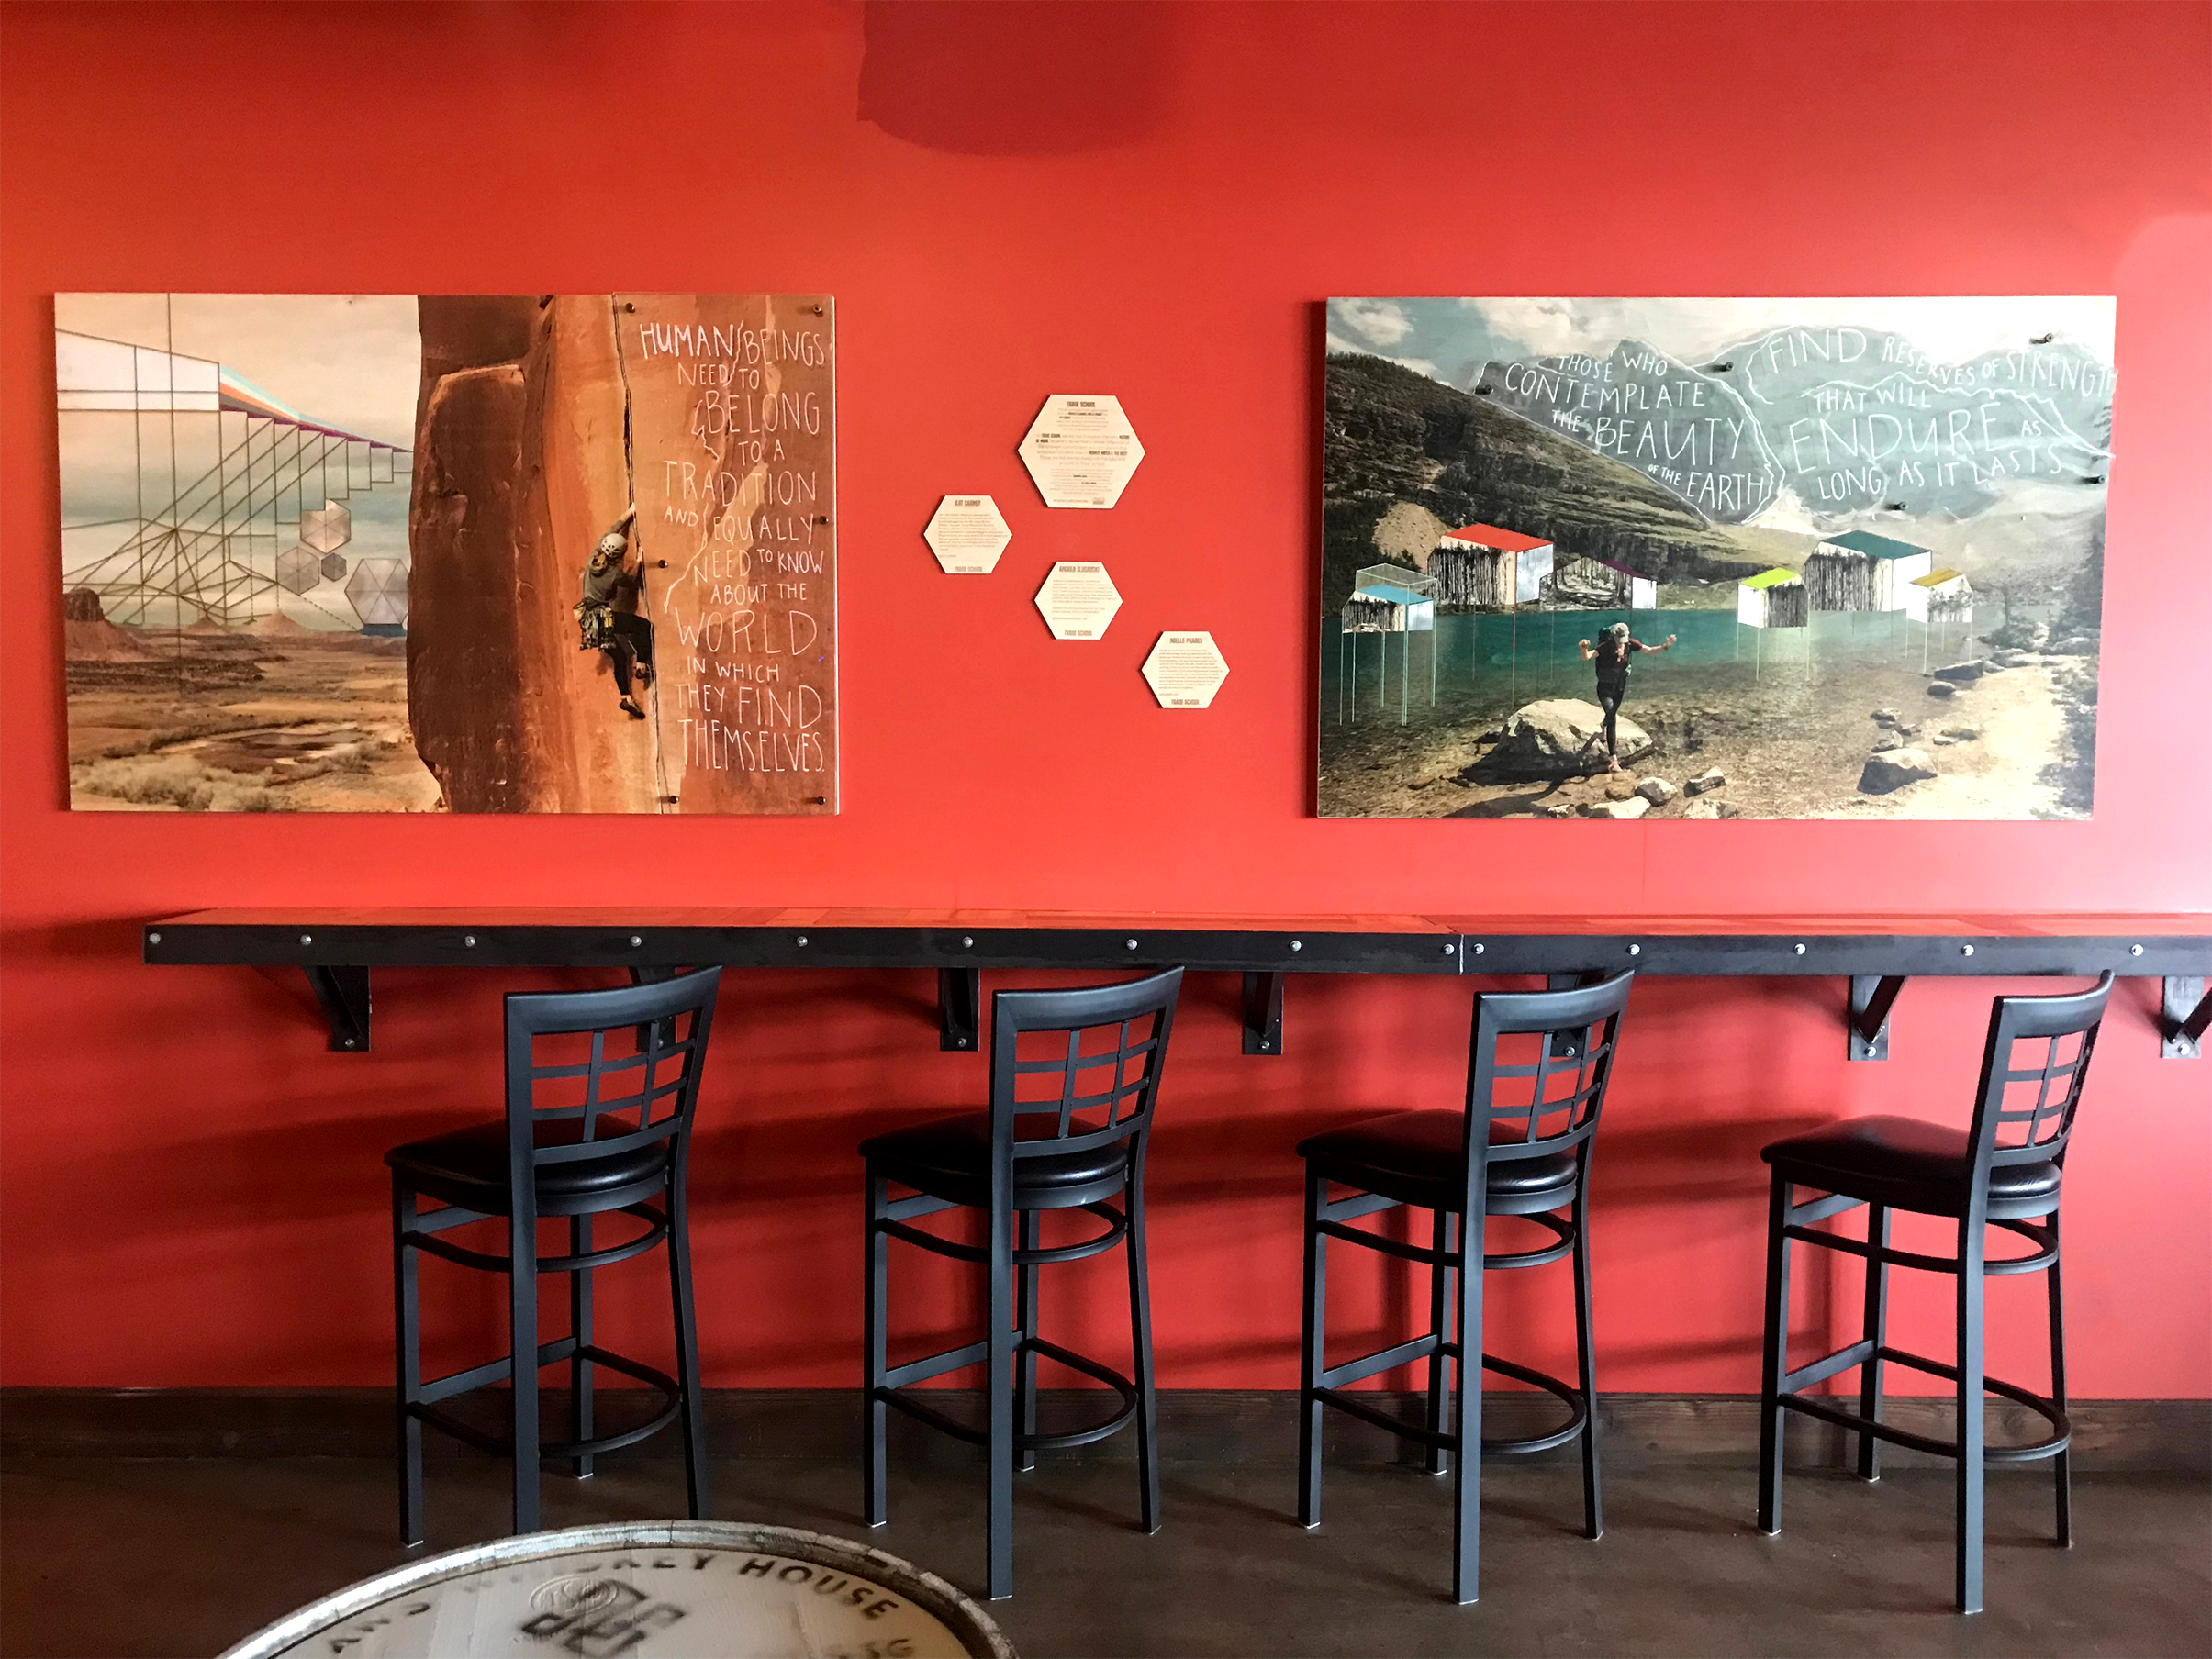 Both works are on display at Westfax Brewing Company in Lakewood, CO for Fall 2018, after which they will find a more permanent home.